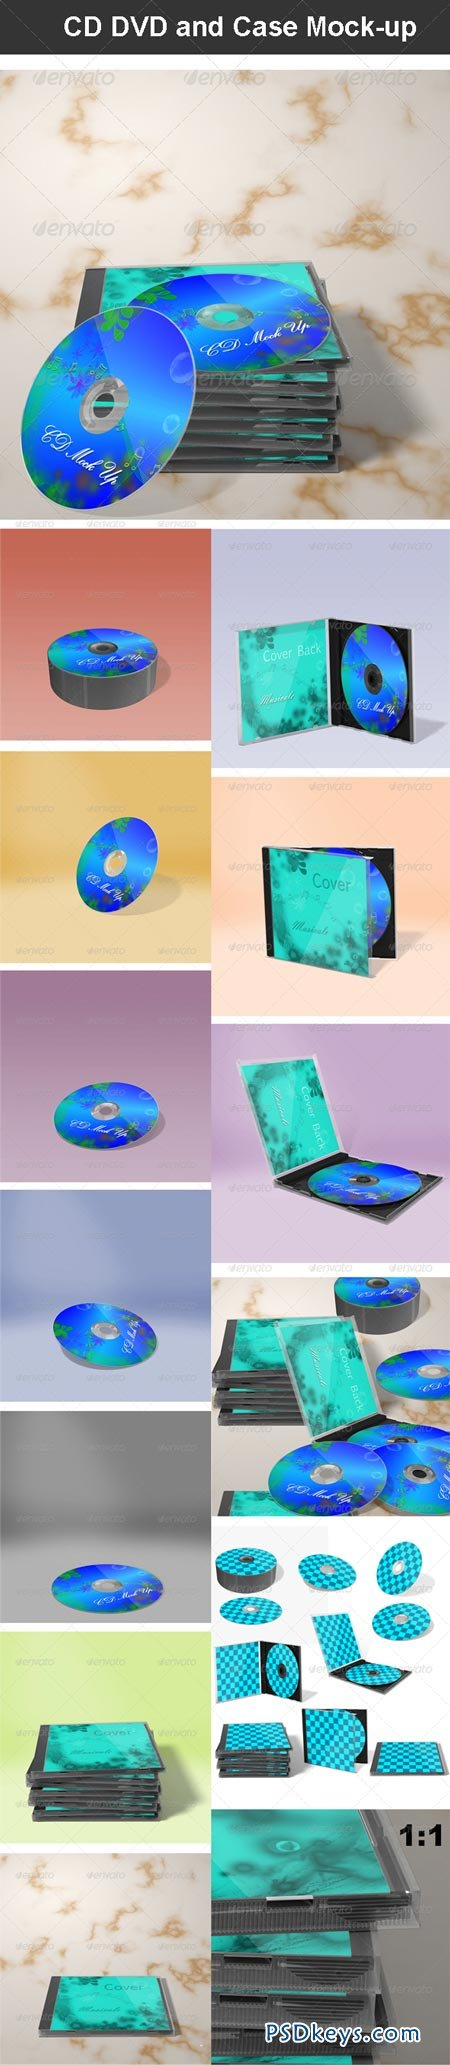 CD DVD and Case Mock-up 6391424